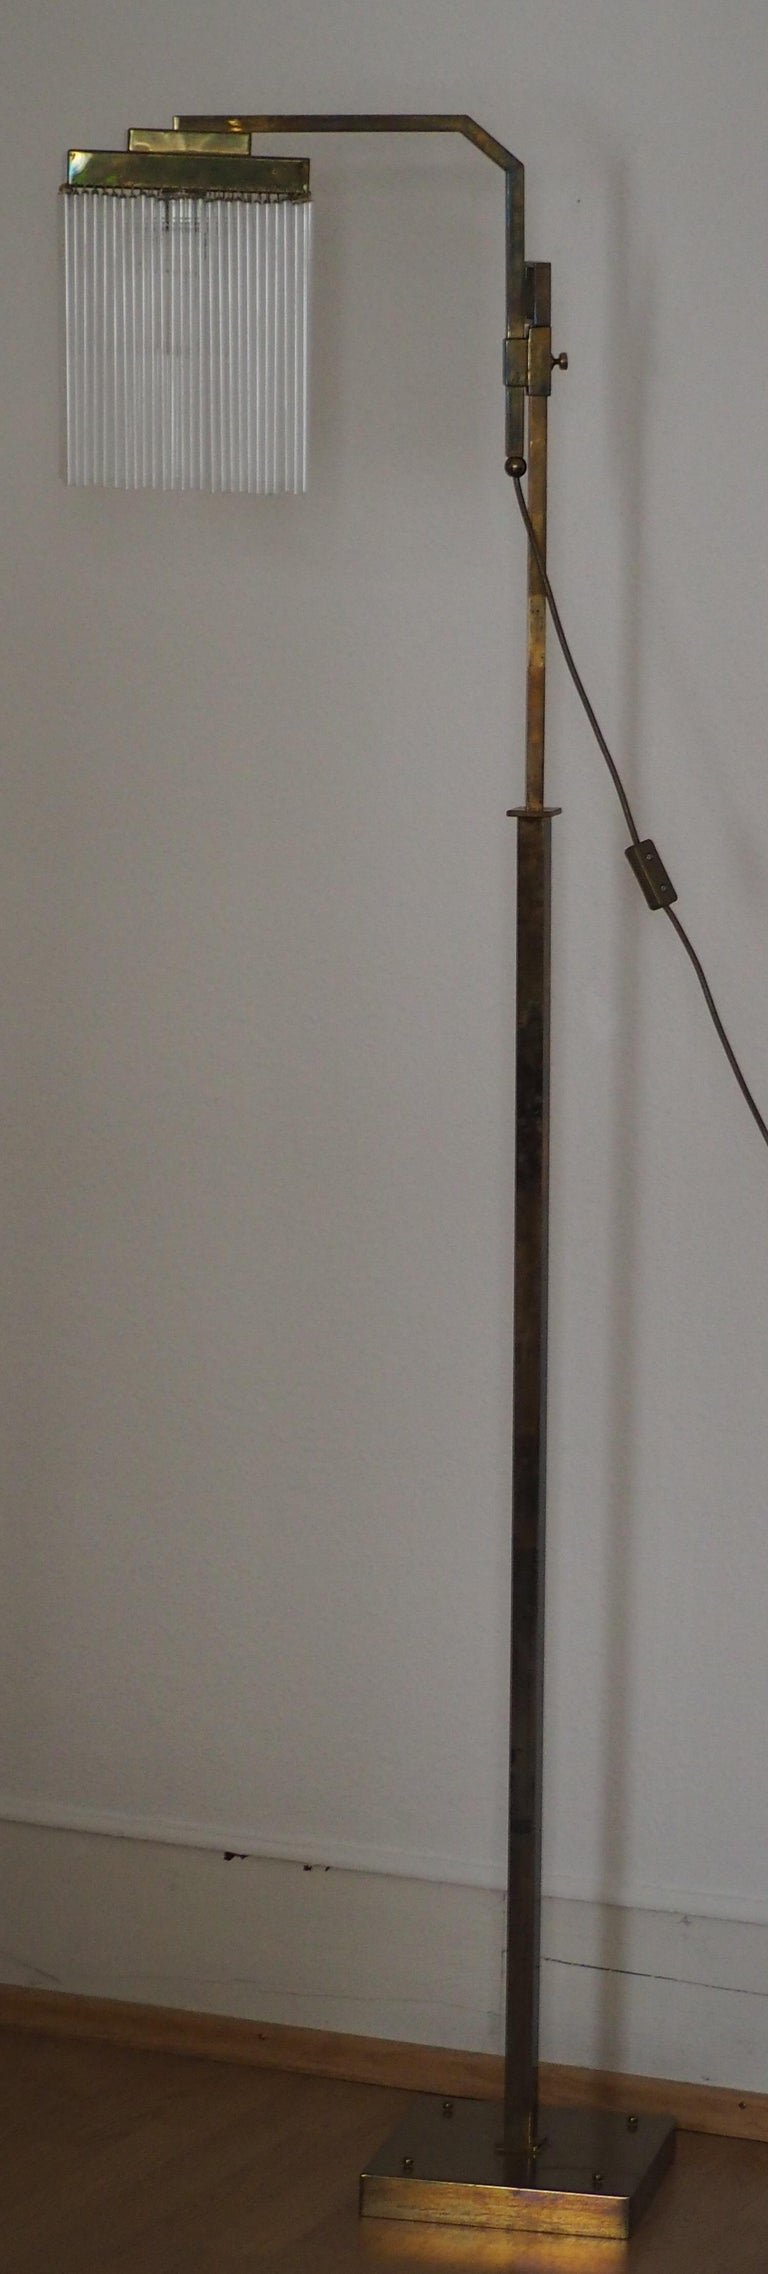 Rare Brass and Glass Floor Lamp From Vienna, Koloman Moser, Otto Wagner Style For Sale 3